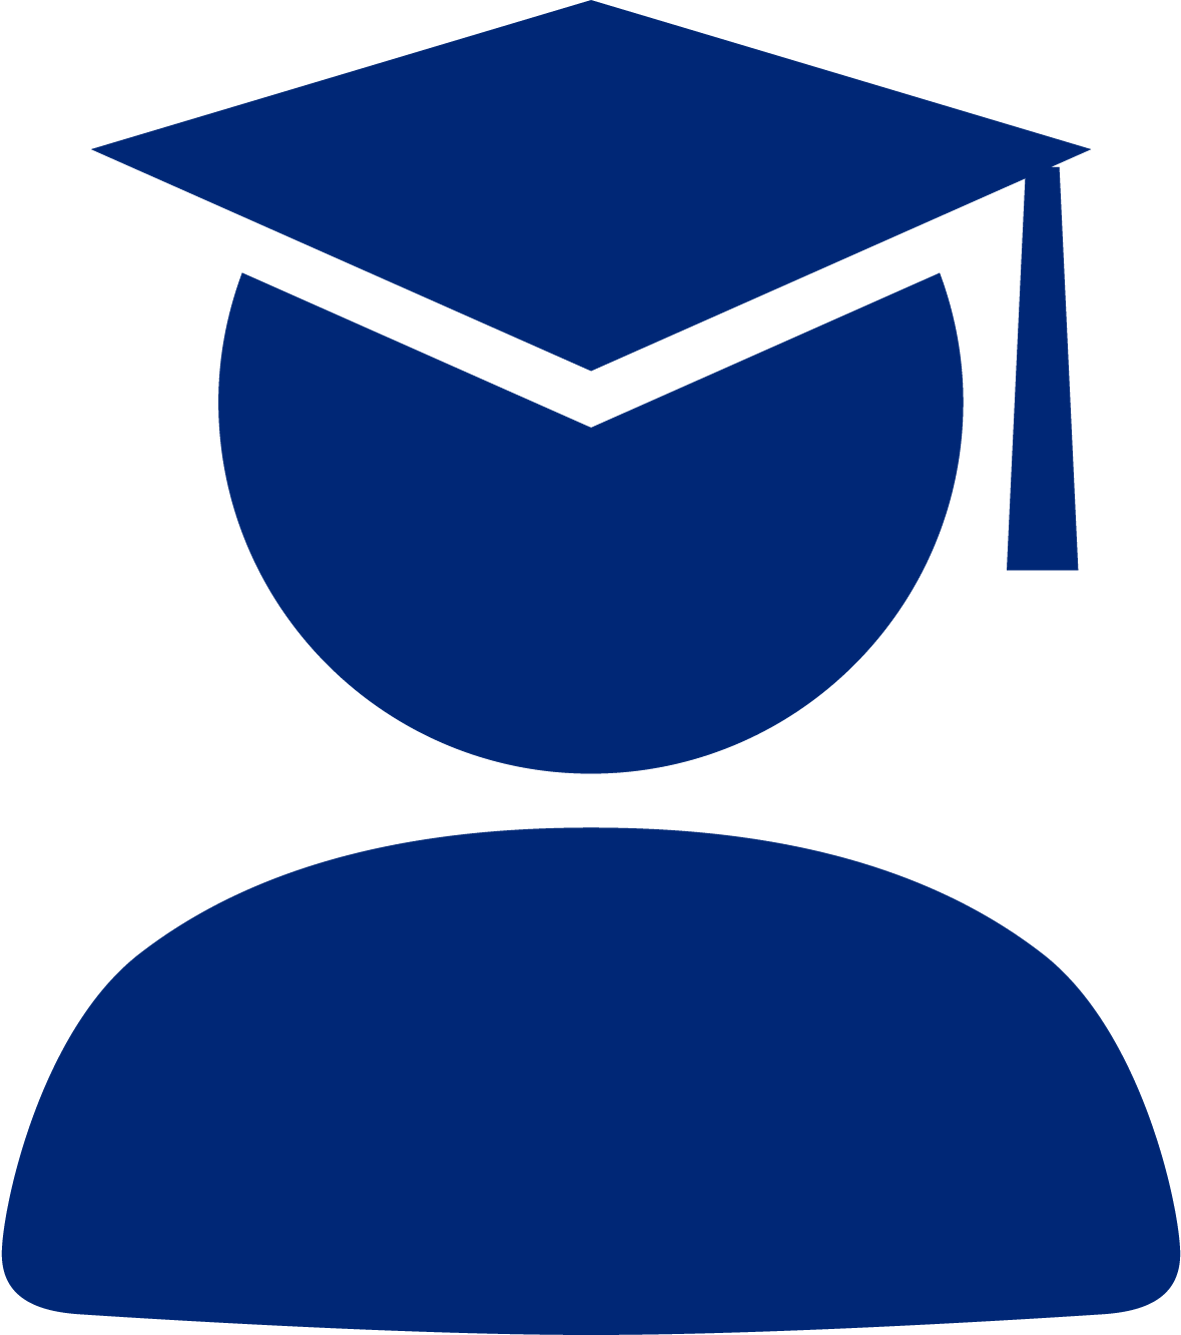 the new graduate New graduate is correct 'new' is an adjective which describes the noun, 'graduate' 'newly' is an adverb which would describe a verb, but in this case, you need the noun.